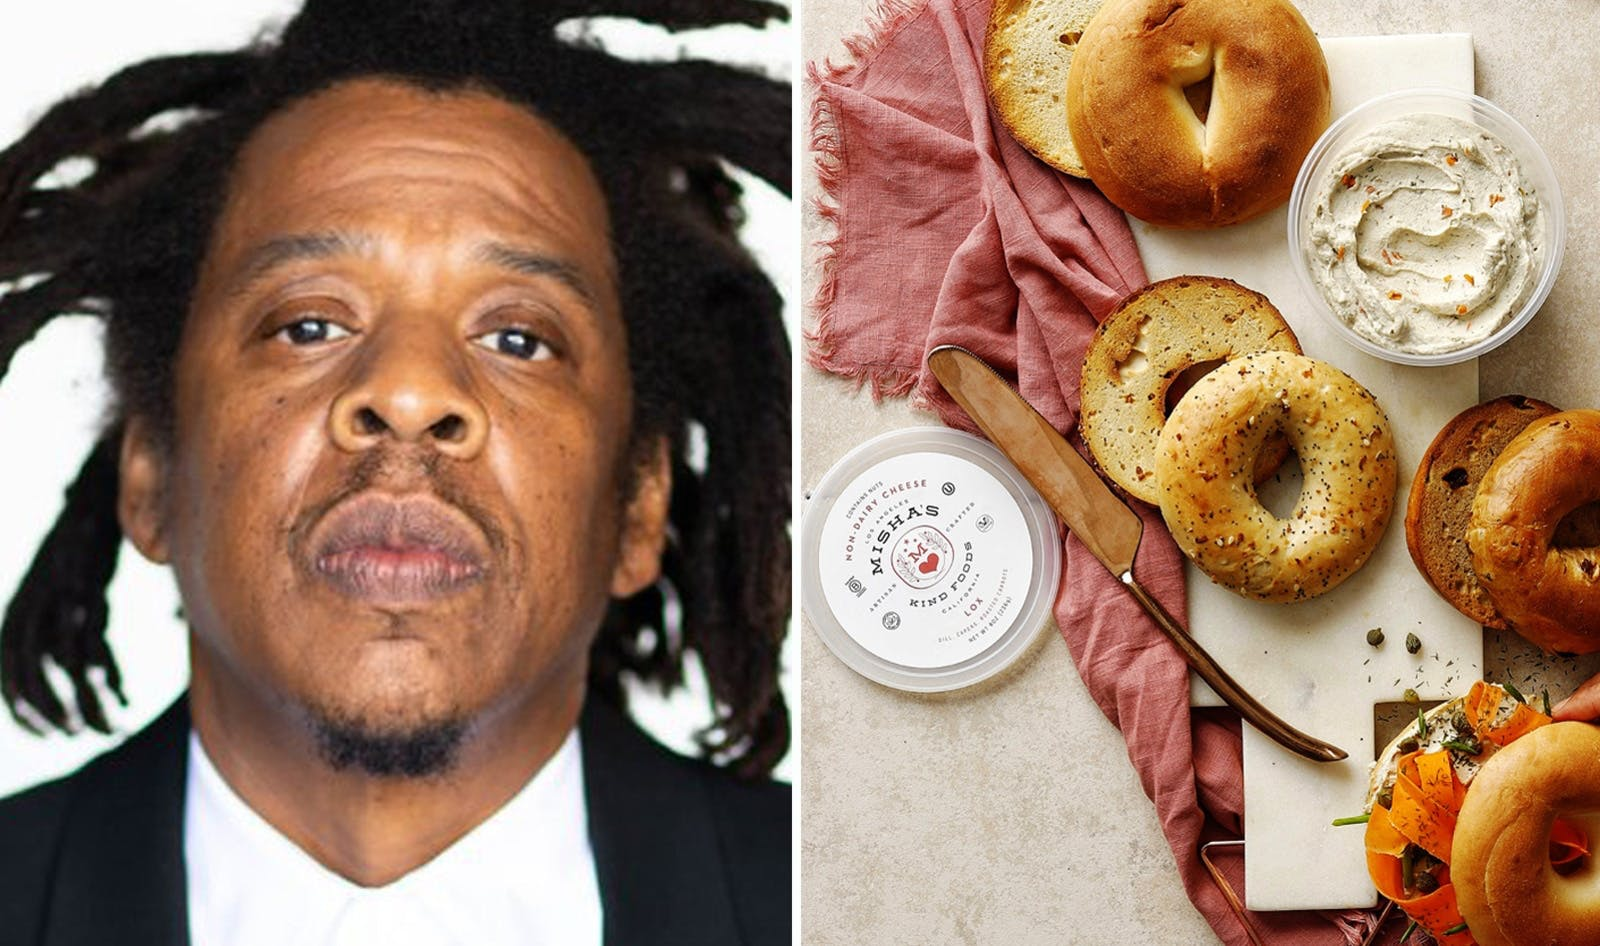 jay-z and vegan cheese